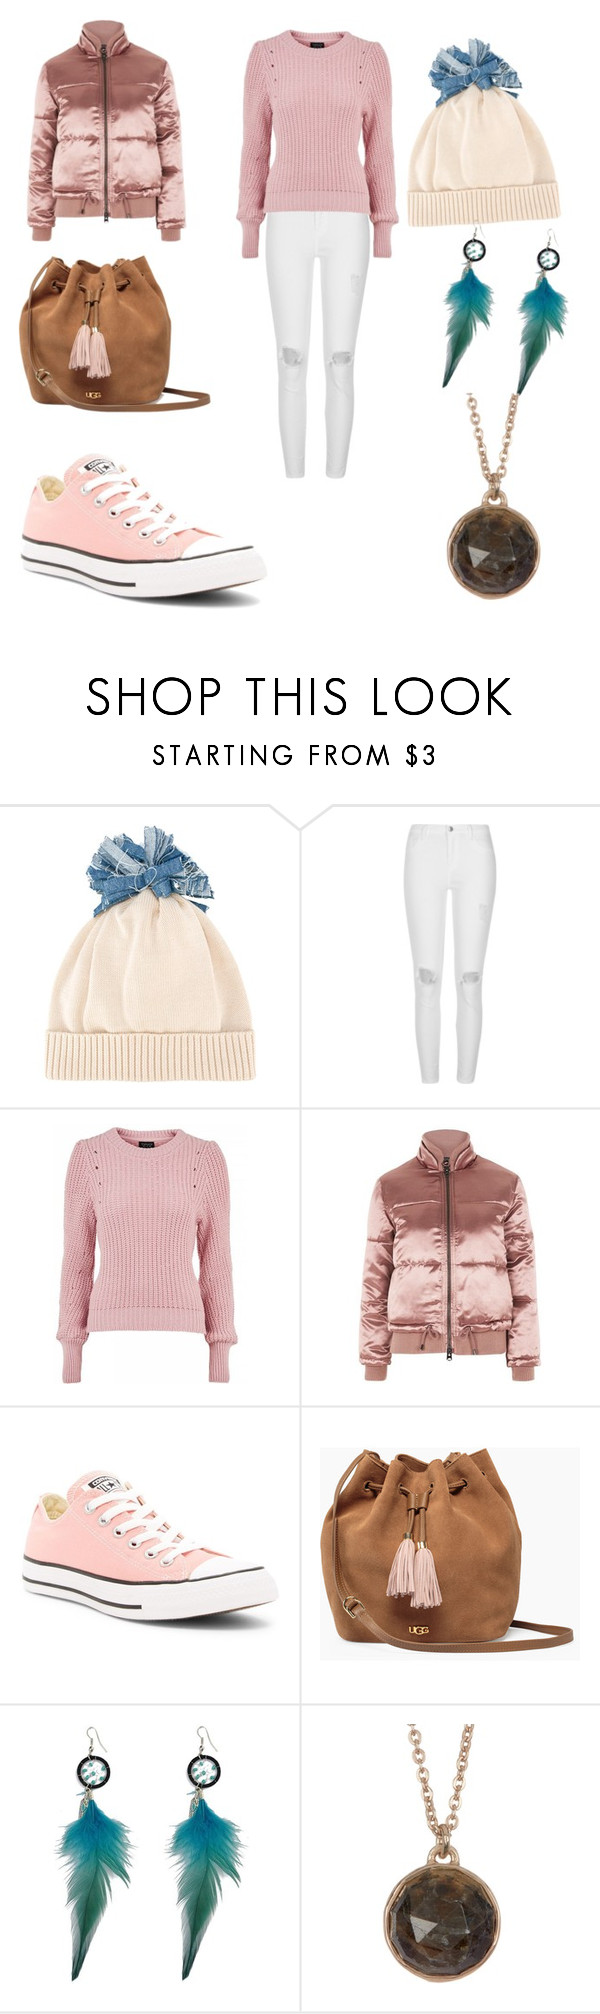 """""""Untitled #1121"""" by shannongarner ❤ liked on Polyvore featuring Federica Moretti, River Island, Topshop, Converse, UGG and Melinda Maria"""